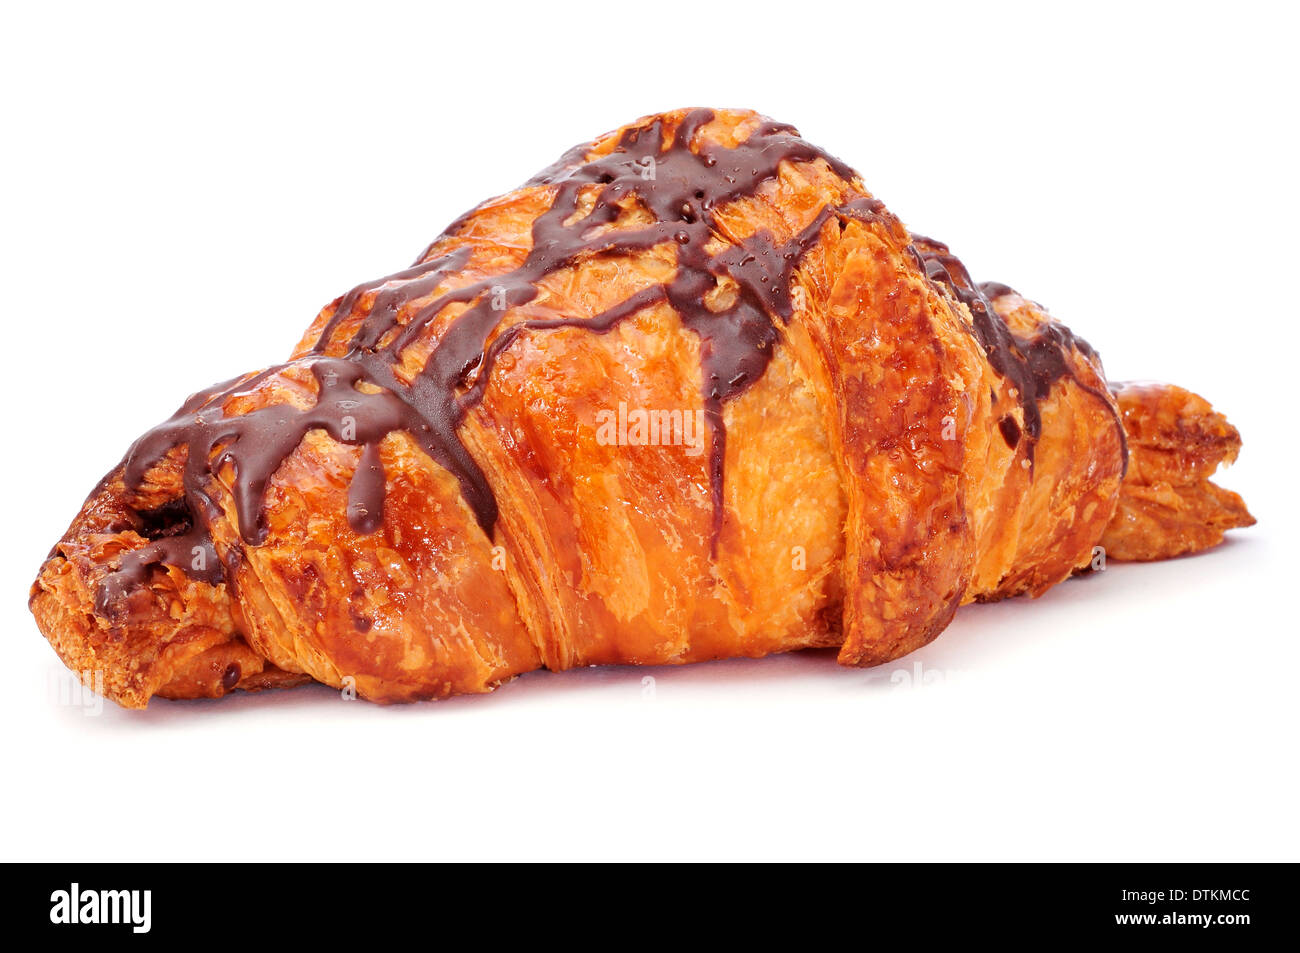 a chocolate croissant on a white background Stock Photo, Royalty ...